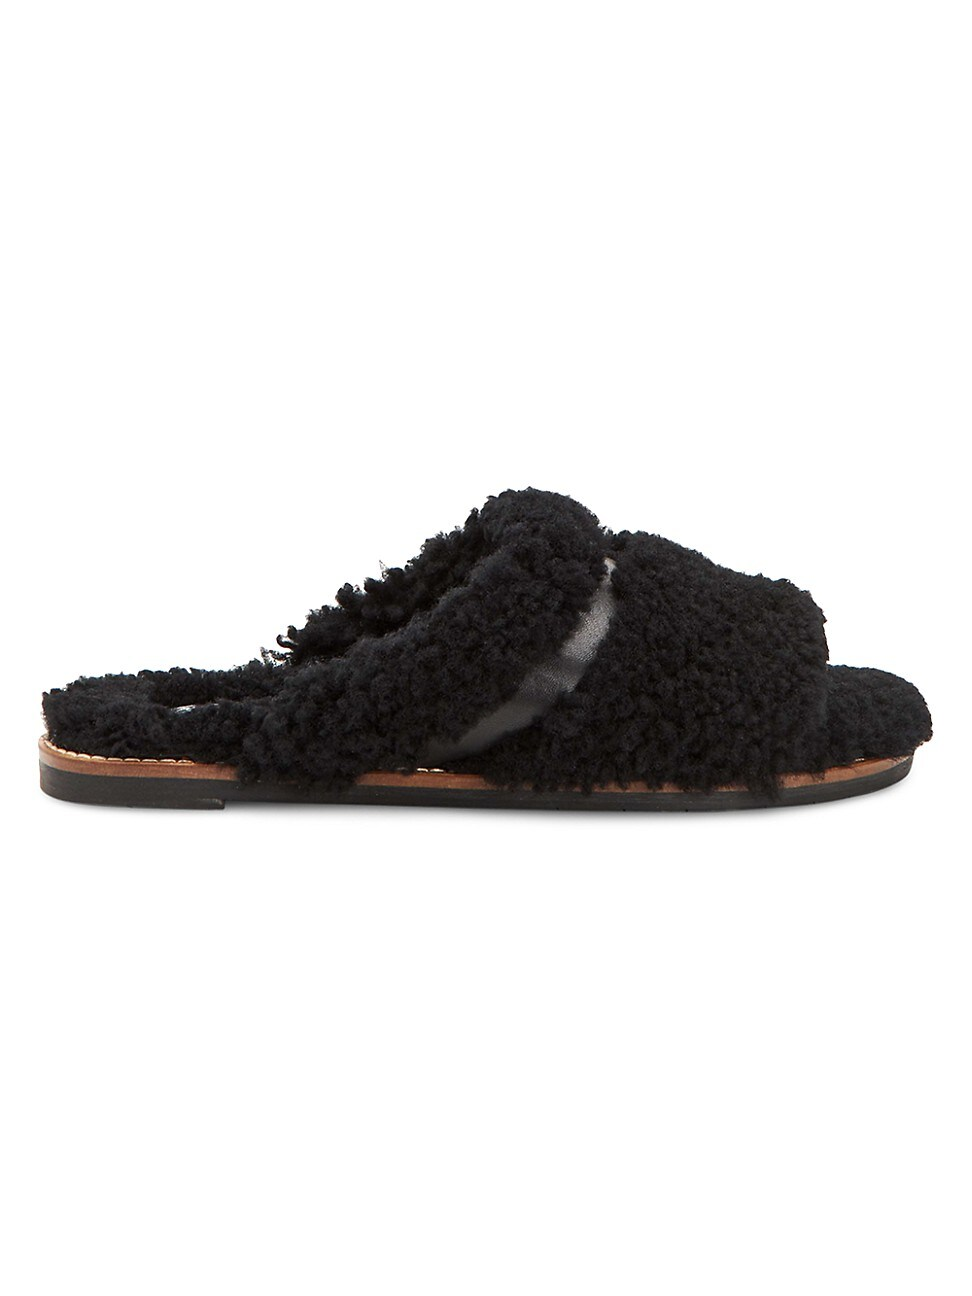 Aquatalia WOMEN'S ALINA SHEARLING & LEATHER SLIPPERS